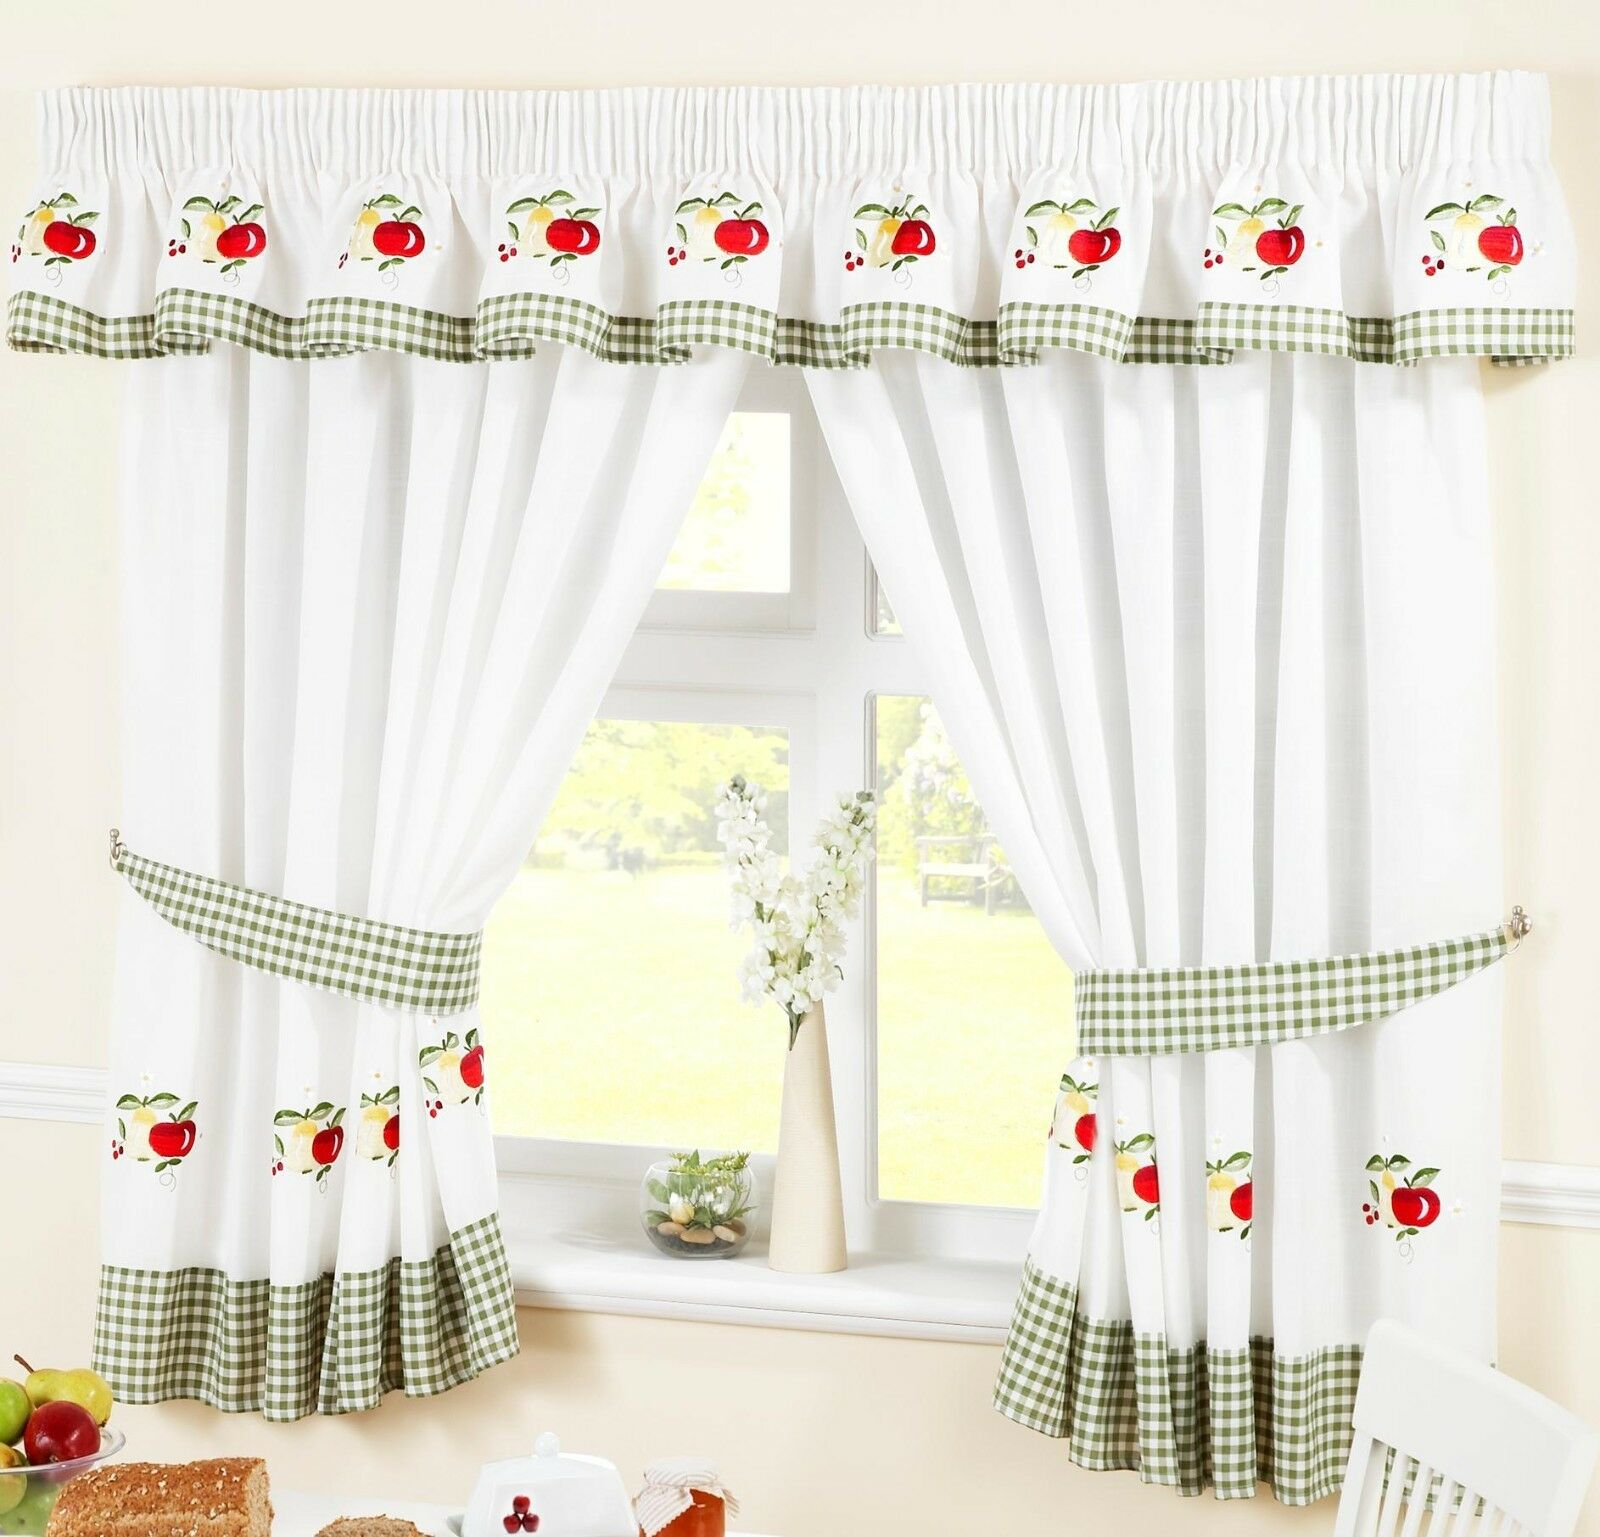 Details about FRUIT COLOURFUL GREEN VOILE CAFE NET CURTAIN PANEL KITCHEN  CURTAINS